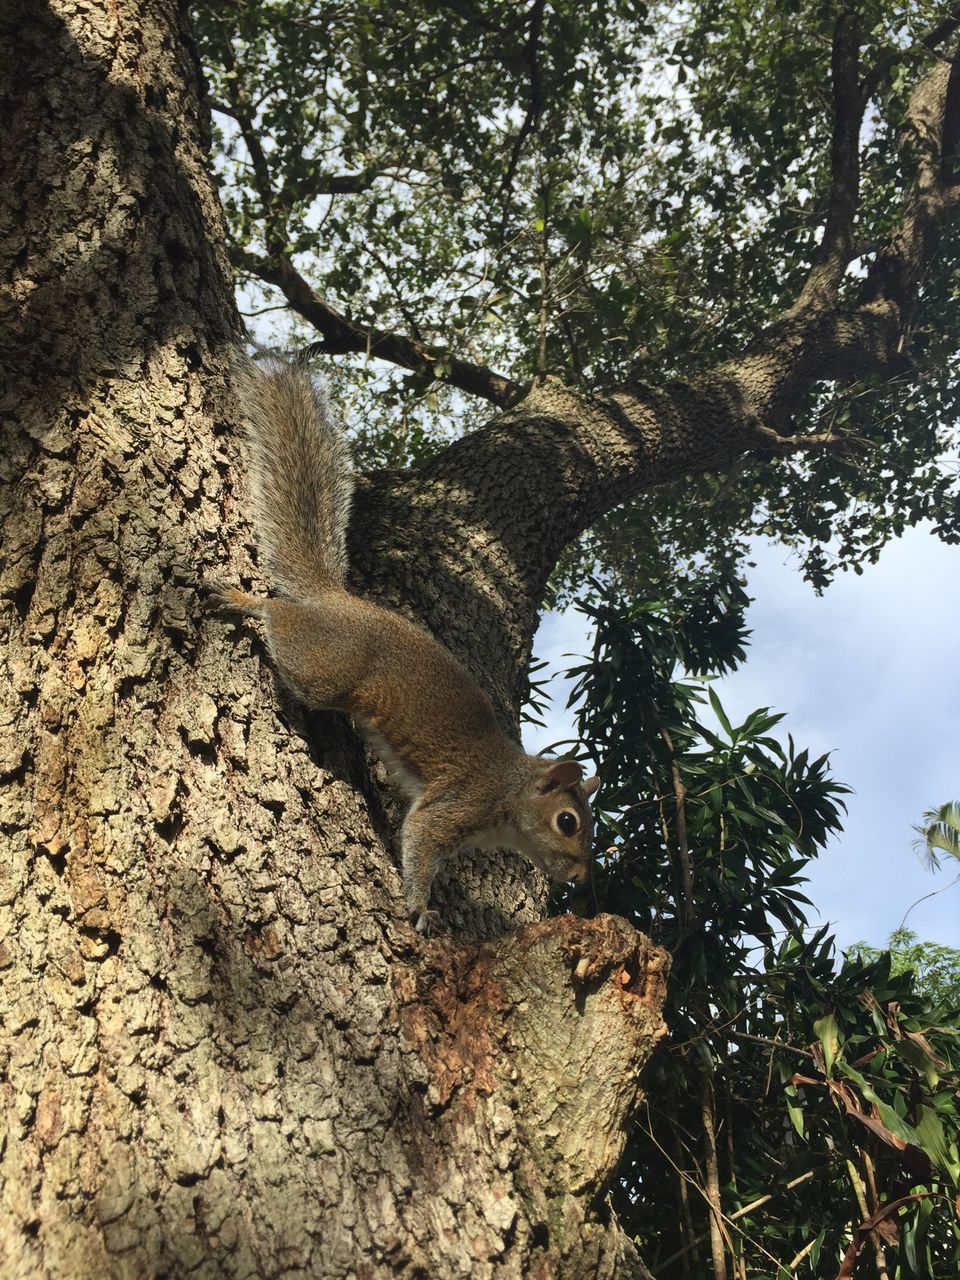 tree, animals in the wild, animal themes, one animal, nature, day, animal wildlife, no people, mammal, low angle view, outdoors, branch, squirrel, koala, close-up, sky